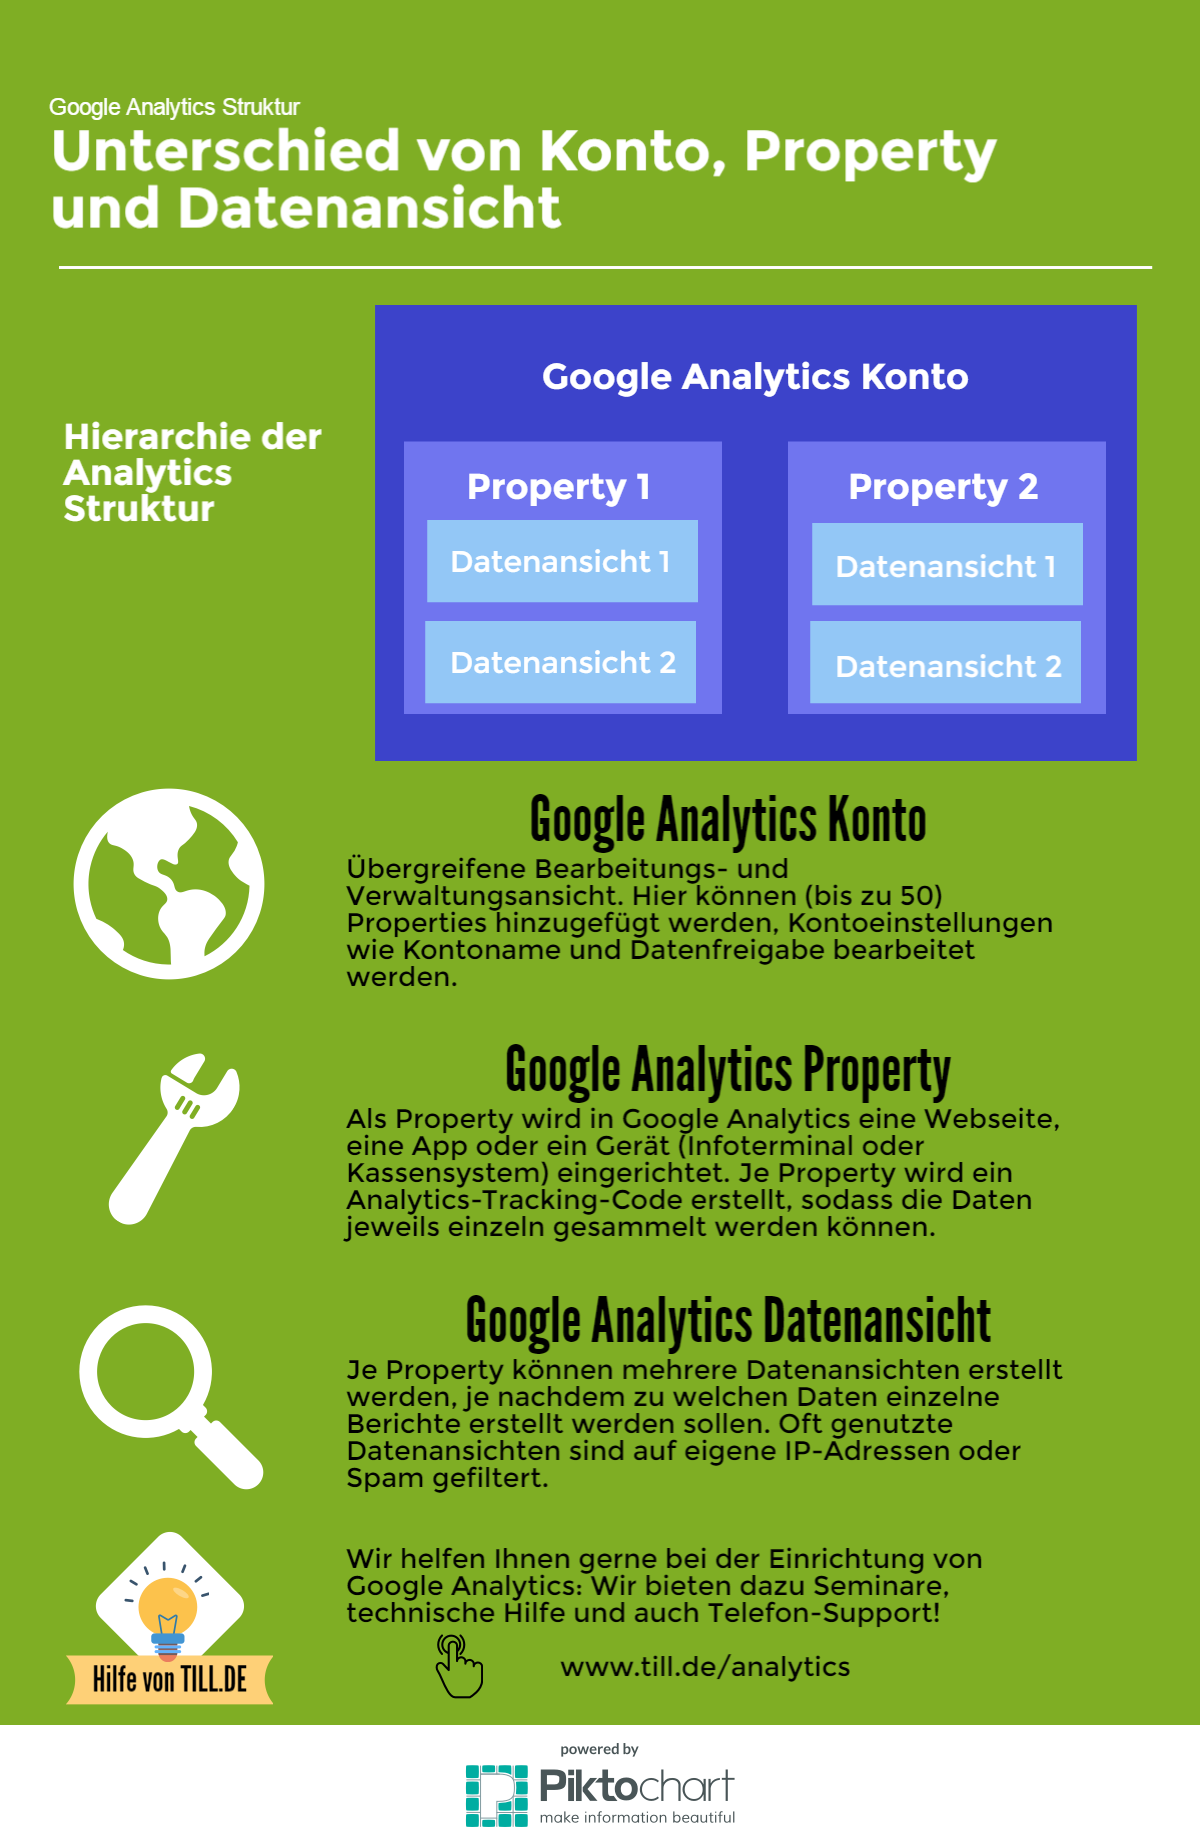 TILL.DE-Infographic-Google-Analytics_Konto_Property_Datenansicht